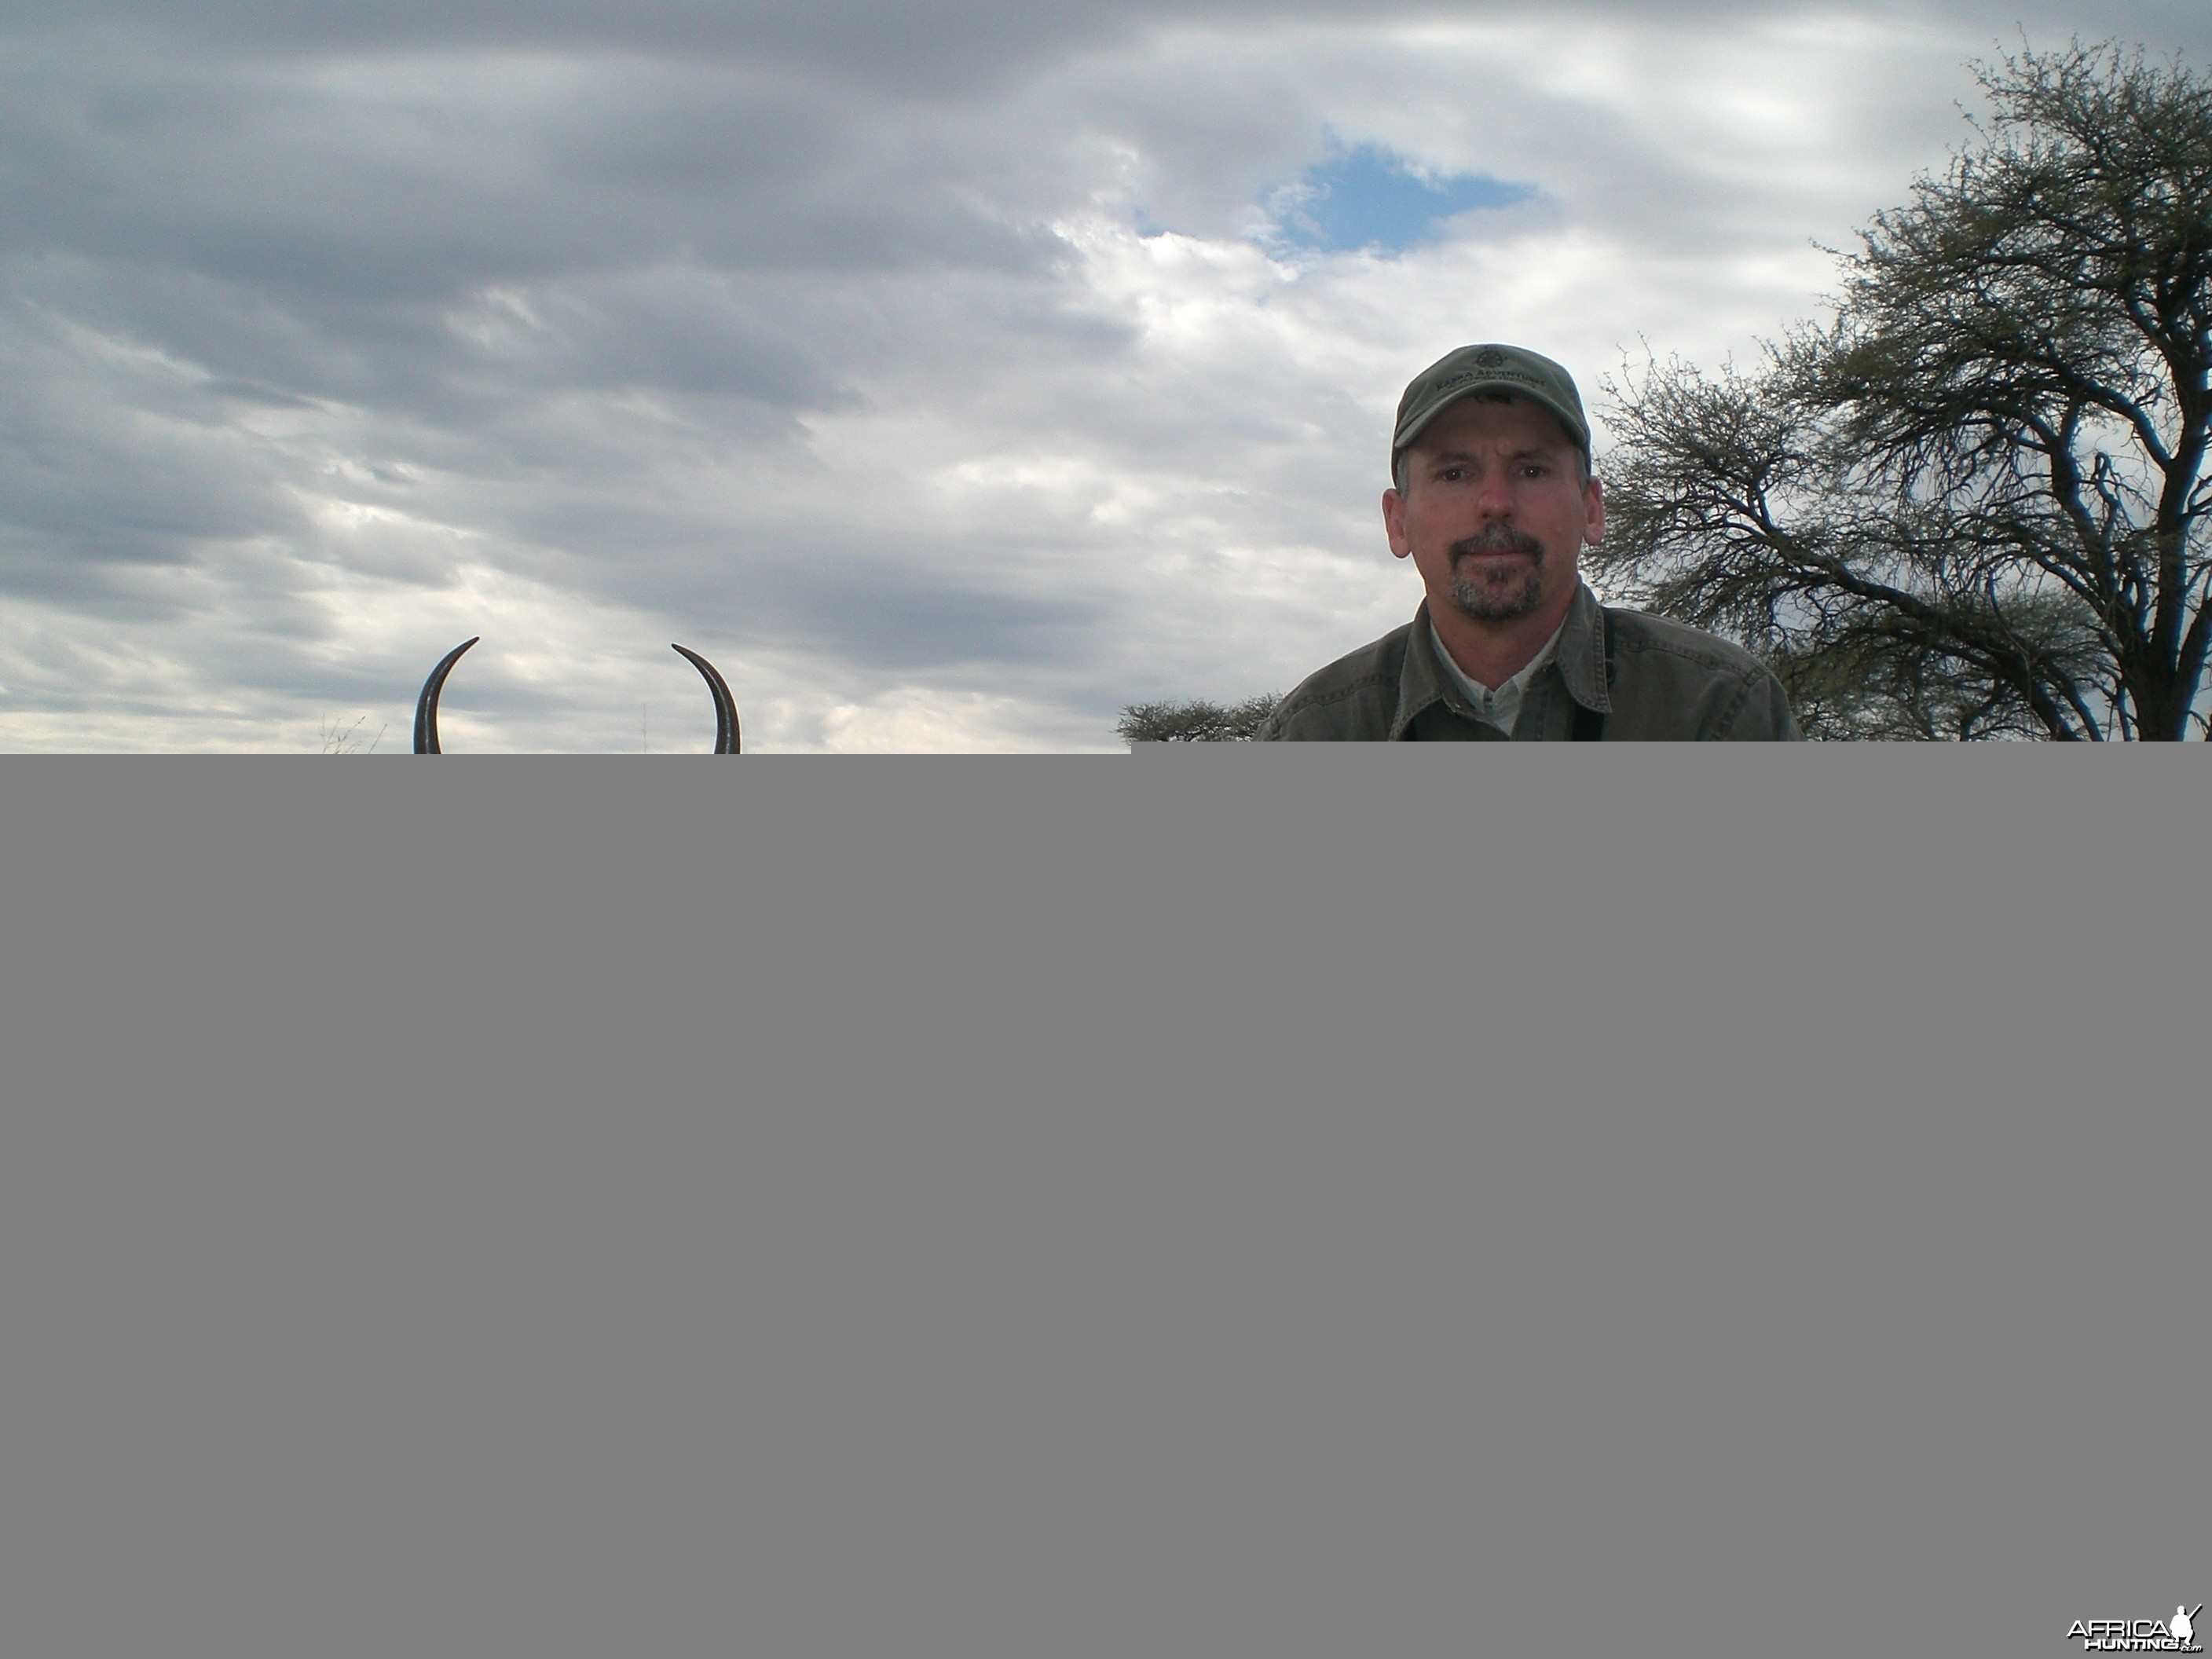 Springbok hunt in Northwest Province SA